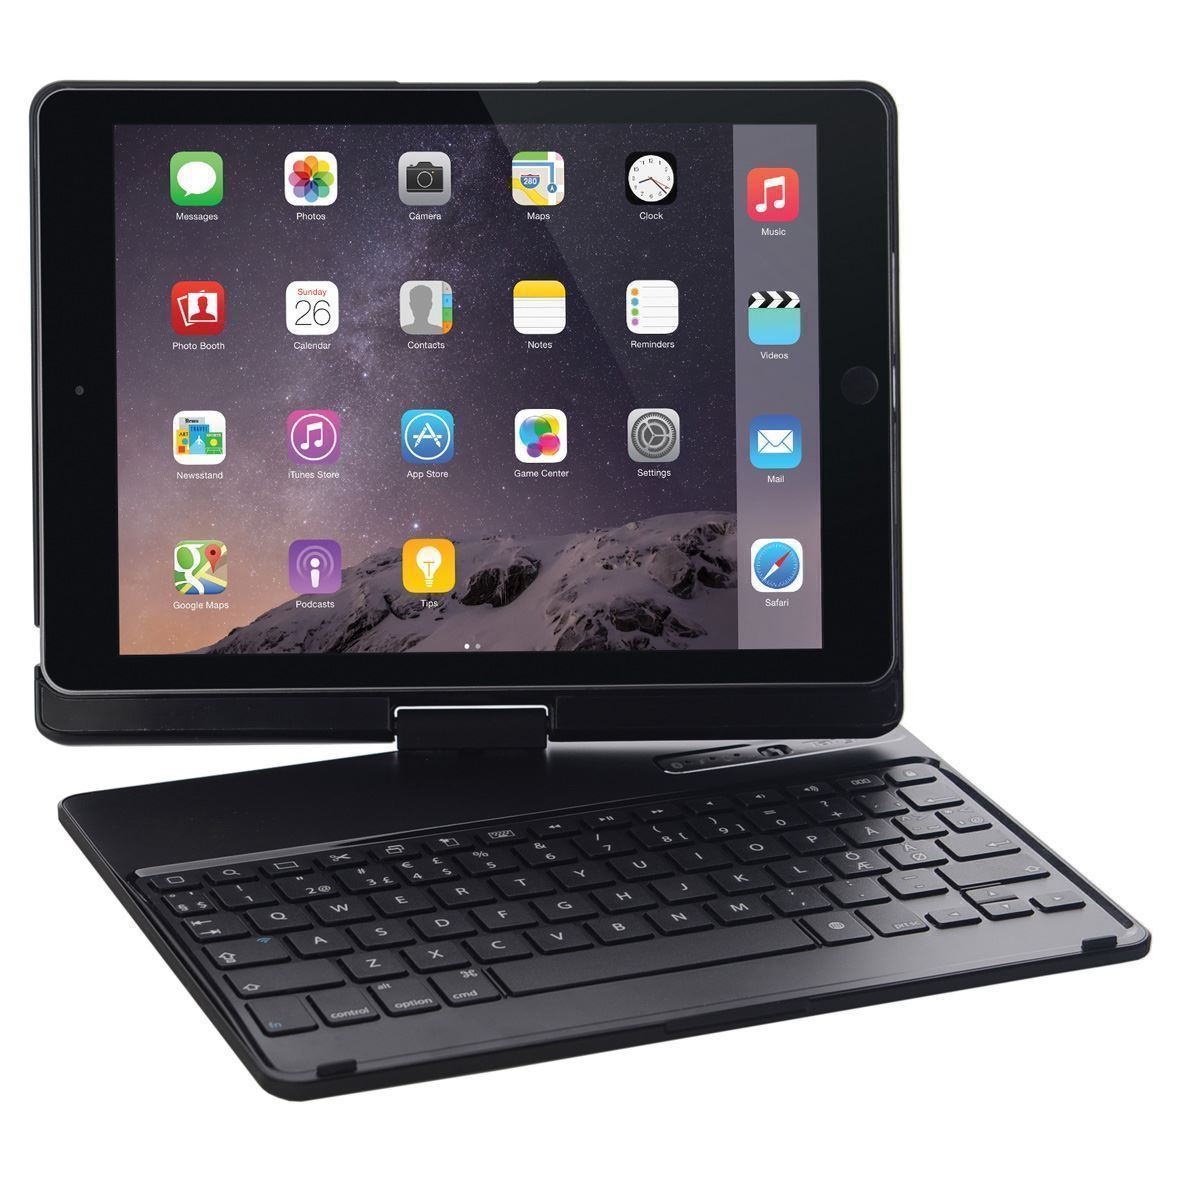 versatype hard shell keyboard case arabic layout for ipad air 2 black. Black Bedroom Furniture Sets. Home Design Ideas